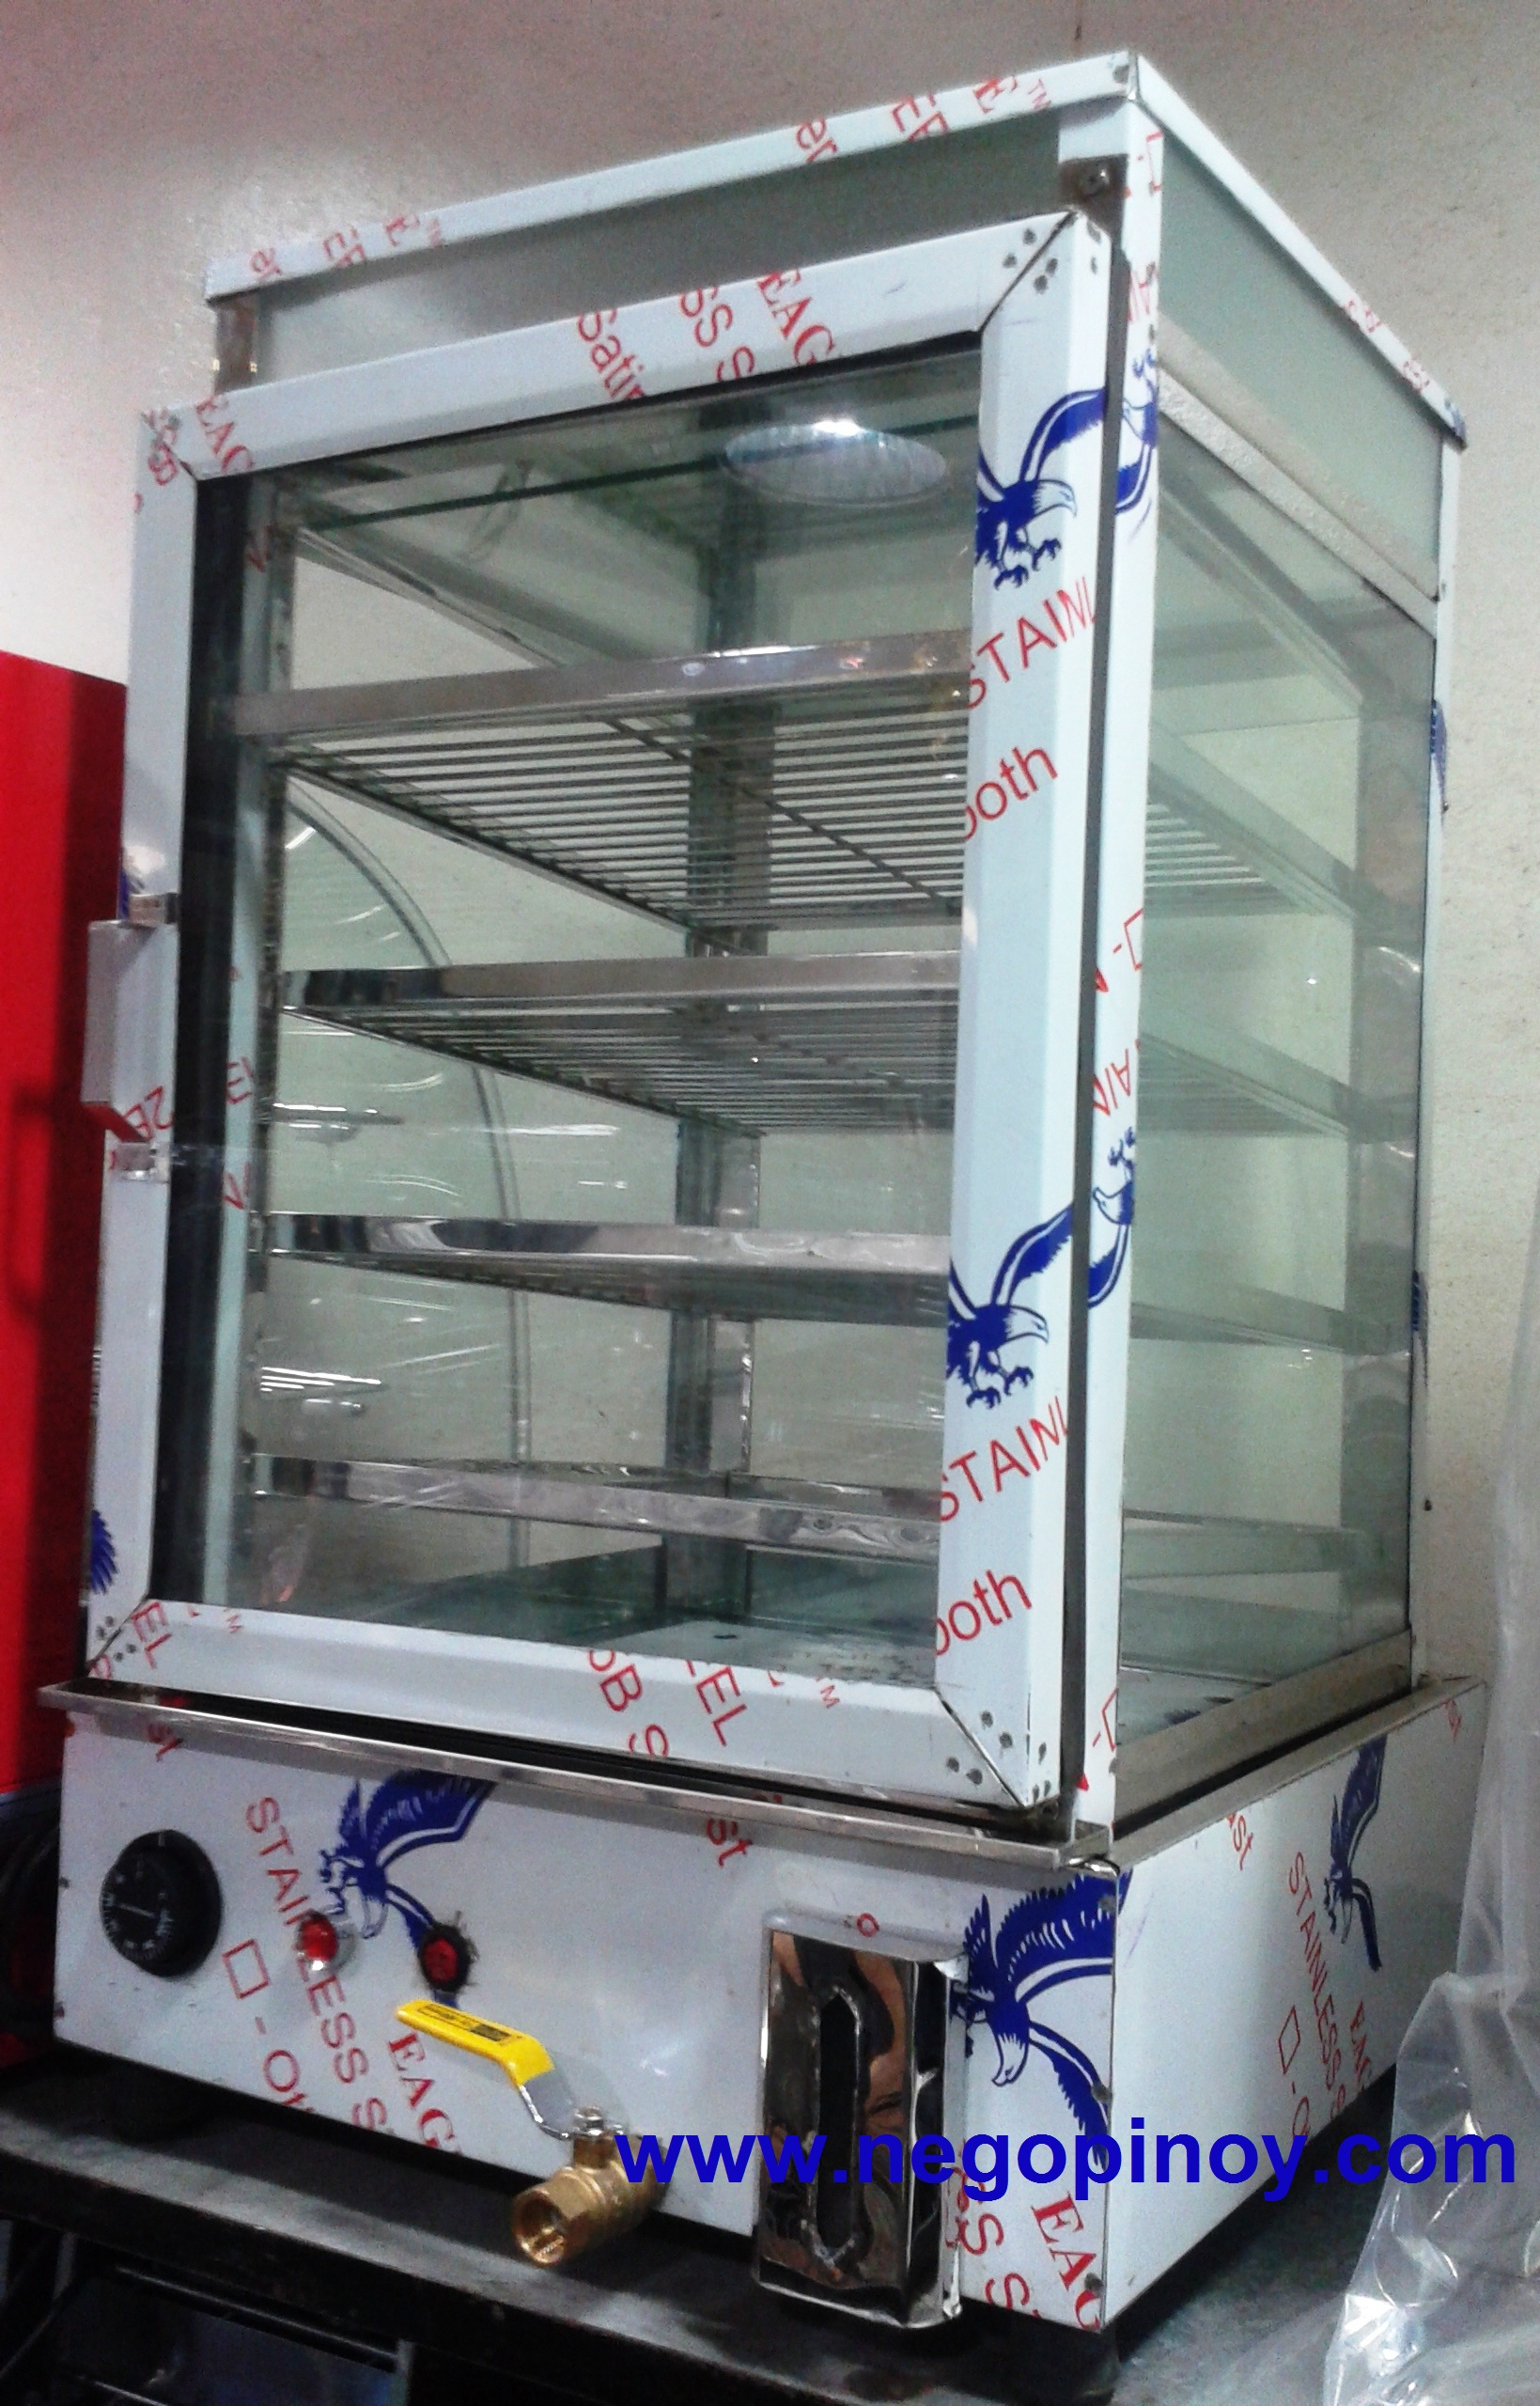 Glass Electric Steamer ~ Siomai siopao dimsum steamer « negopinoy trading